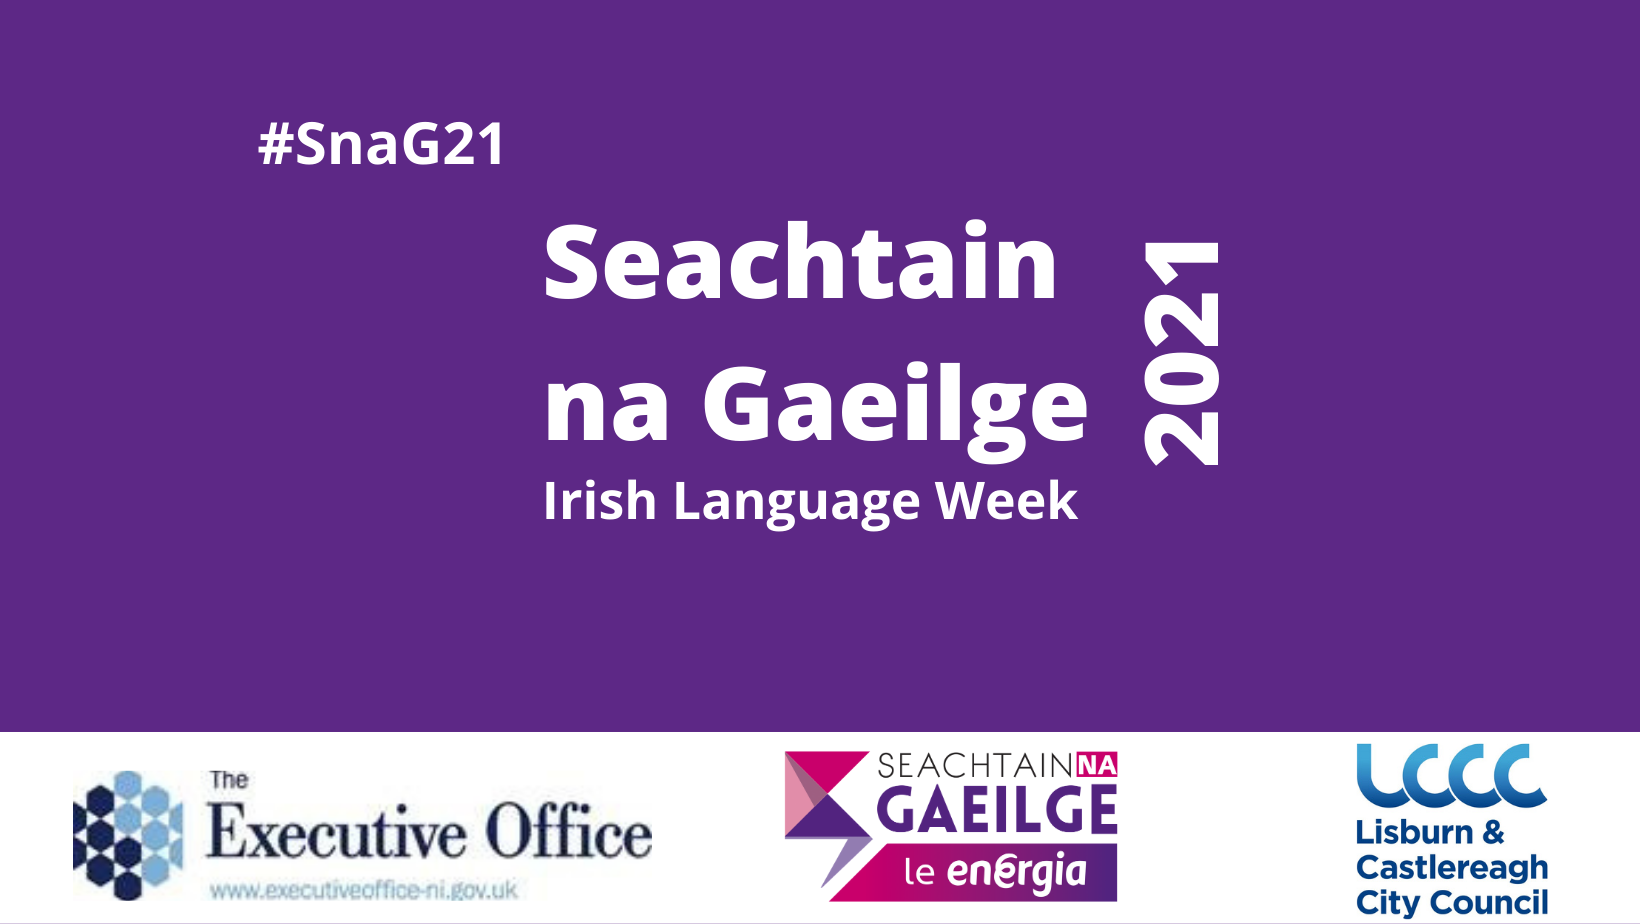 Join ISLAND Arts as we showcase Seachtain na Gaeilge (Irish Language Week), running to 17 Mar 2021